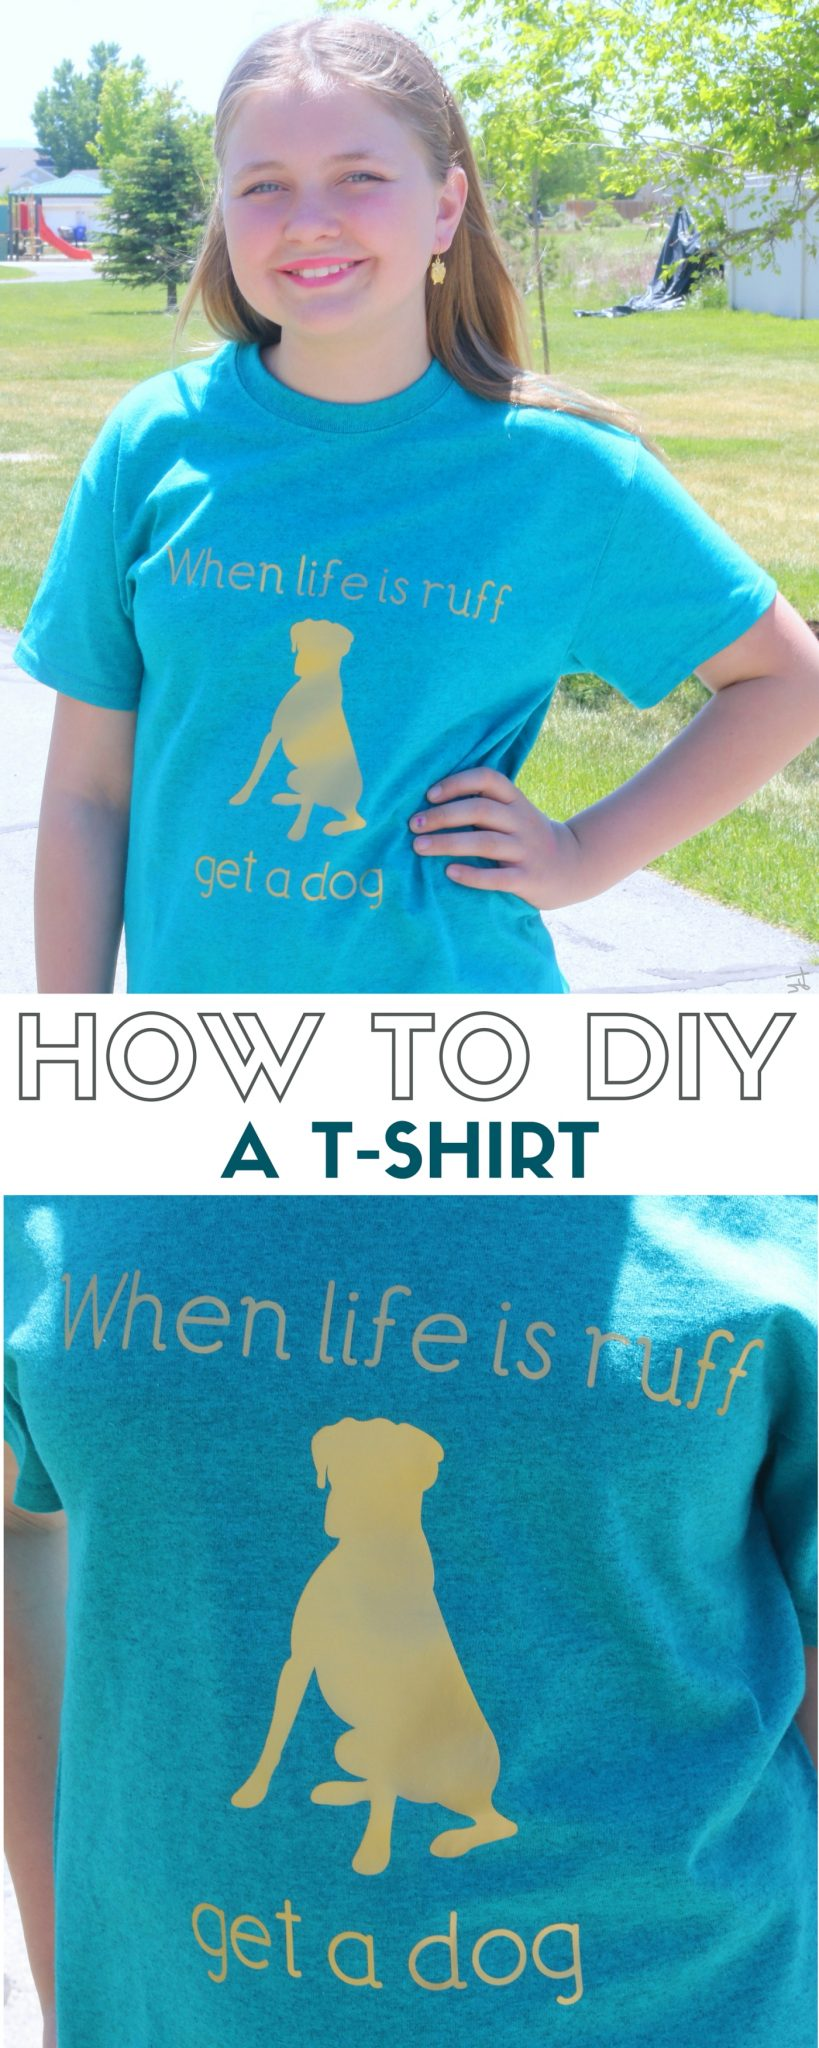 Beat summer boredom by designing your own t-shirts with Cricut and Expressions Vinyl Heat Transfers. A fun DIY that you can personalize to your own style!